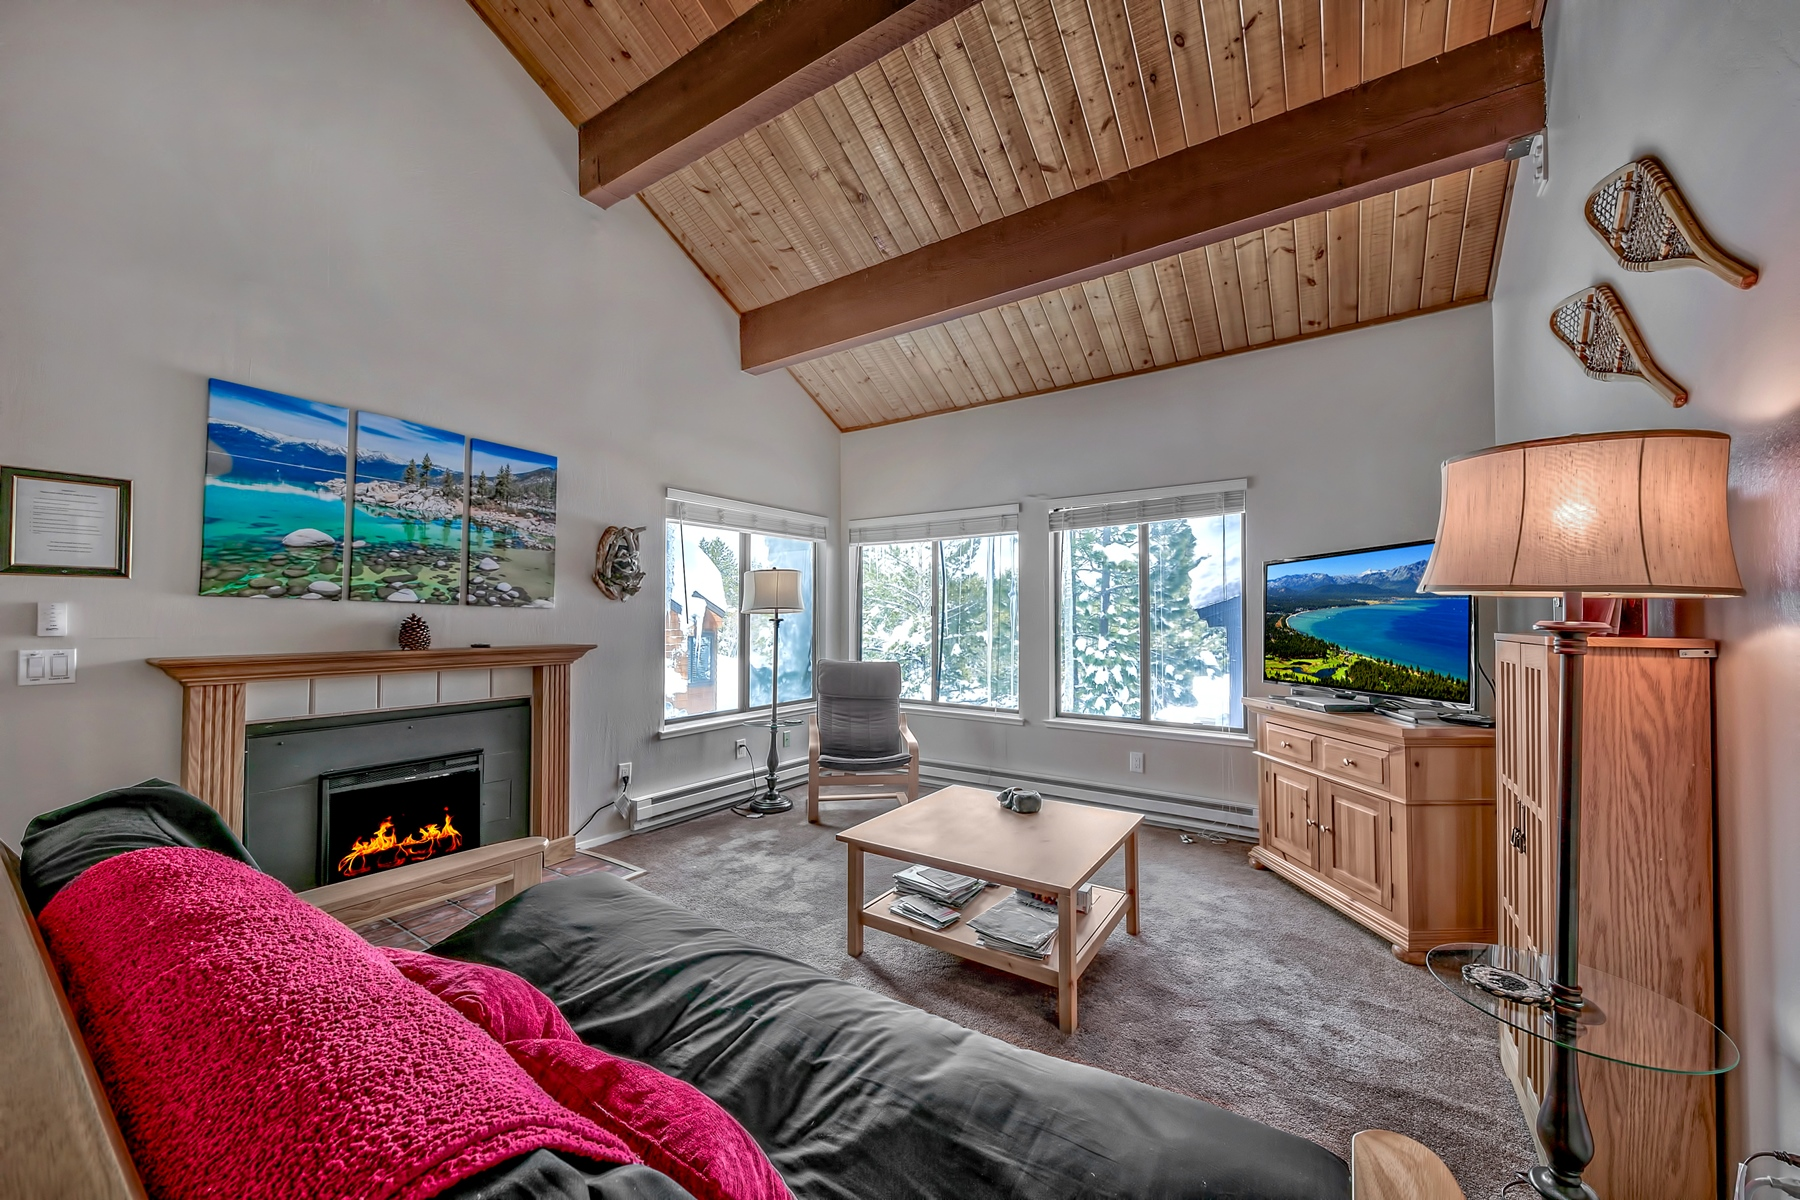 condominiums for Active at 11533 Snowpeak Way Unit 624, Truckee Ca 96161 11533 Snowpeak Way Unit 624 Truckee, California 96161 United States